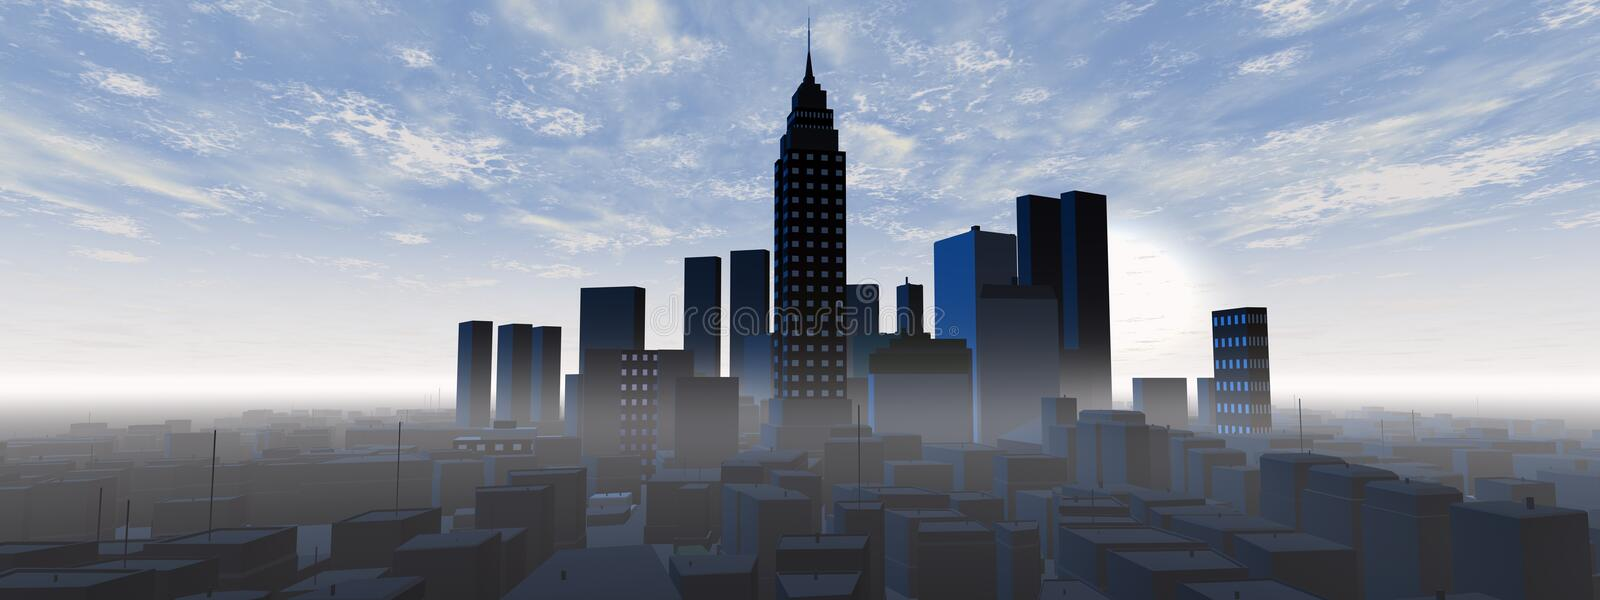 Download Panoramic city skyline stock illustration. Image of center - 19875756